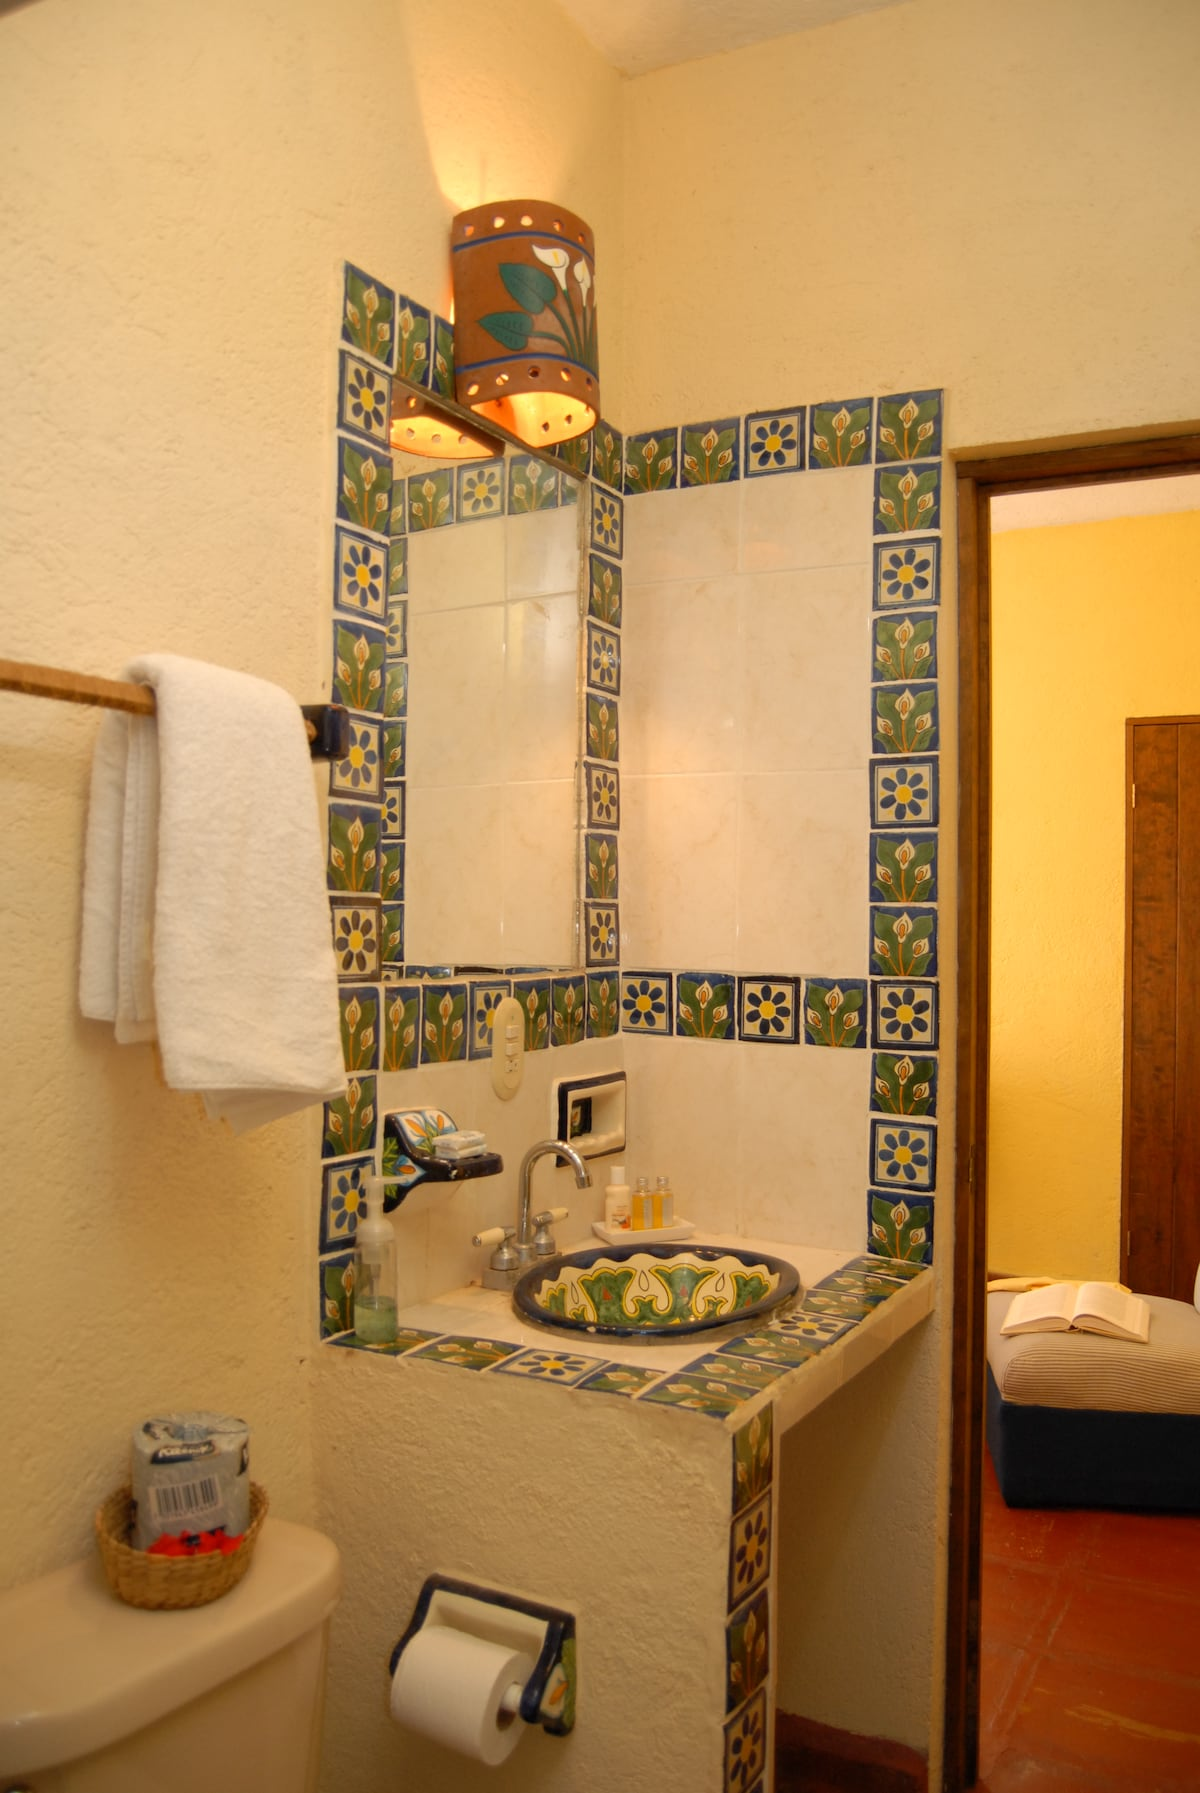 small room, bathroom